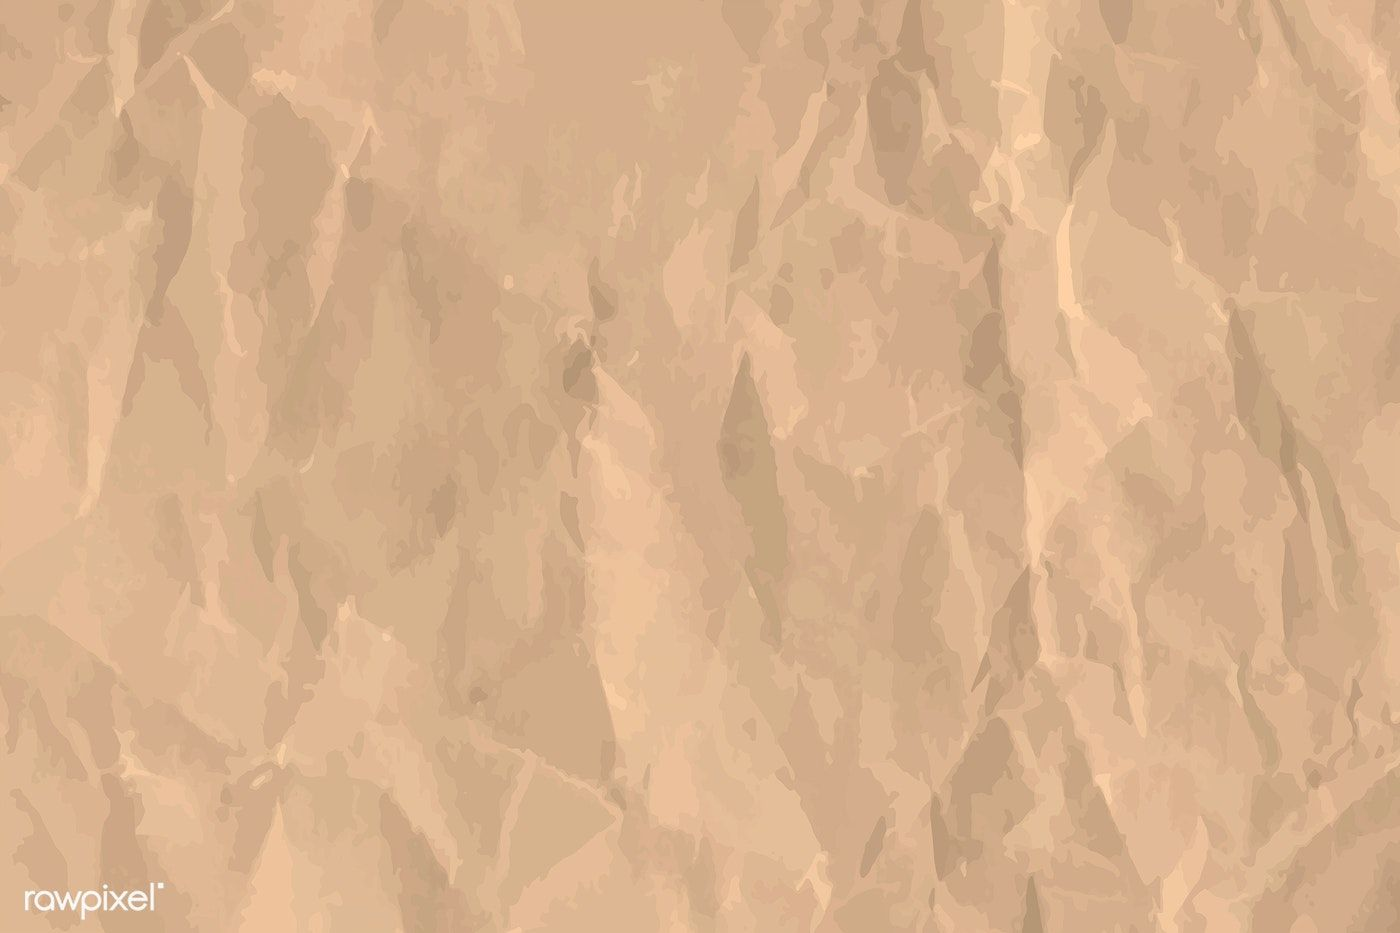 Brown Crumpled Paper Textured Background Vector Free Image By Rawpixel Com Niwa Textured Background Paper Texture Background White Paper Background Texture